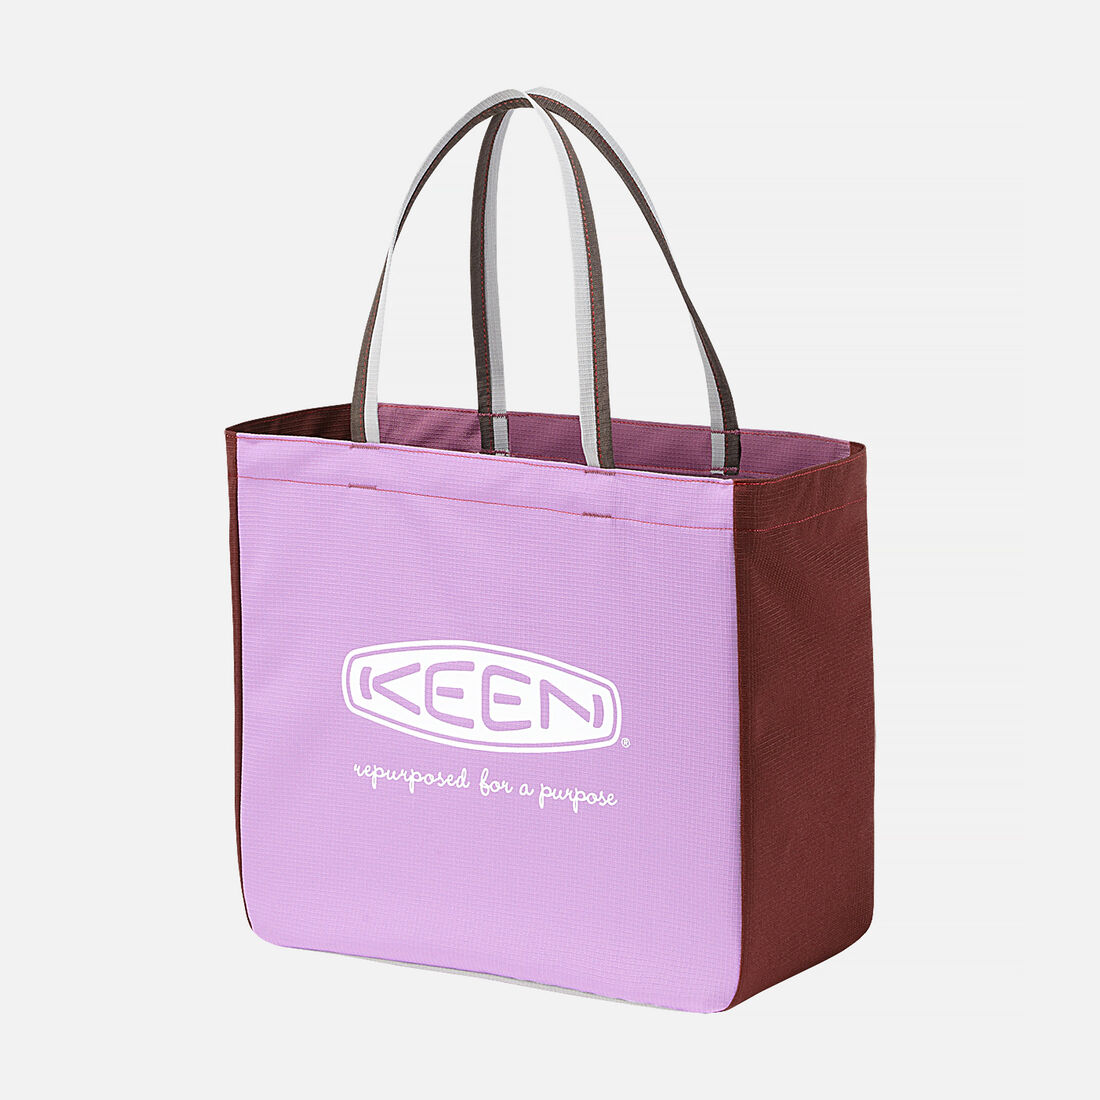 Keen Harvest II Tote Bag in Regal Orchid - large view.